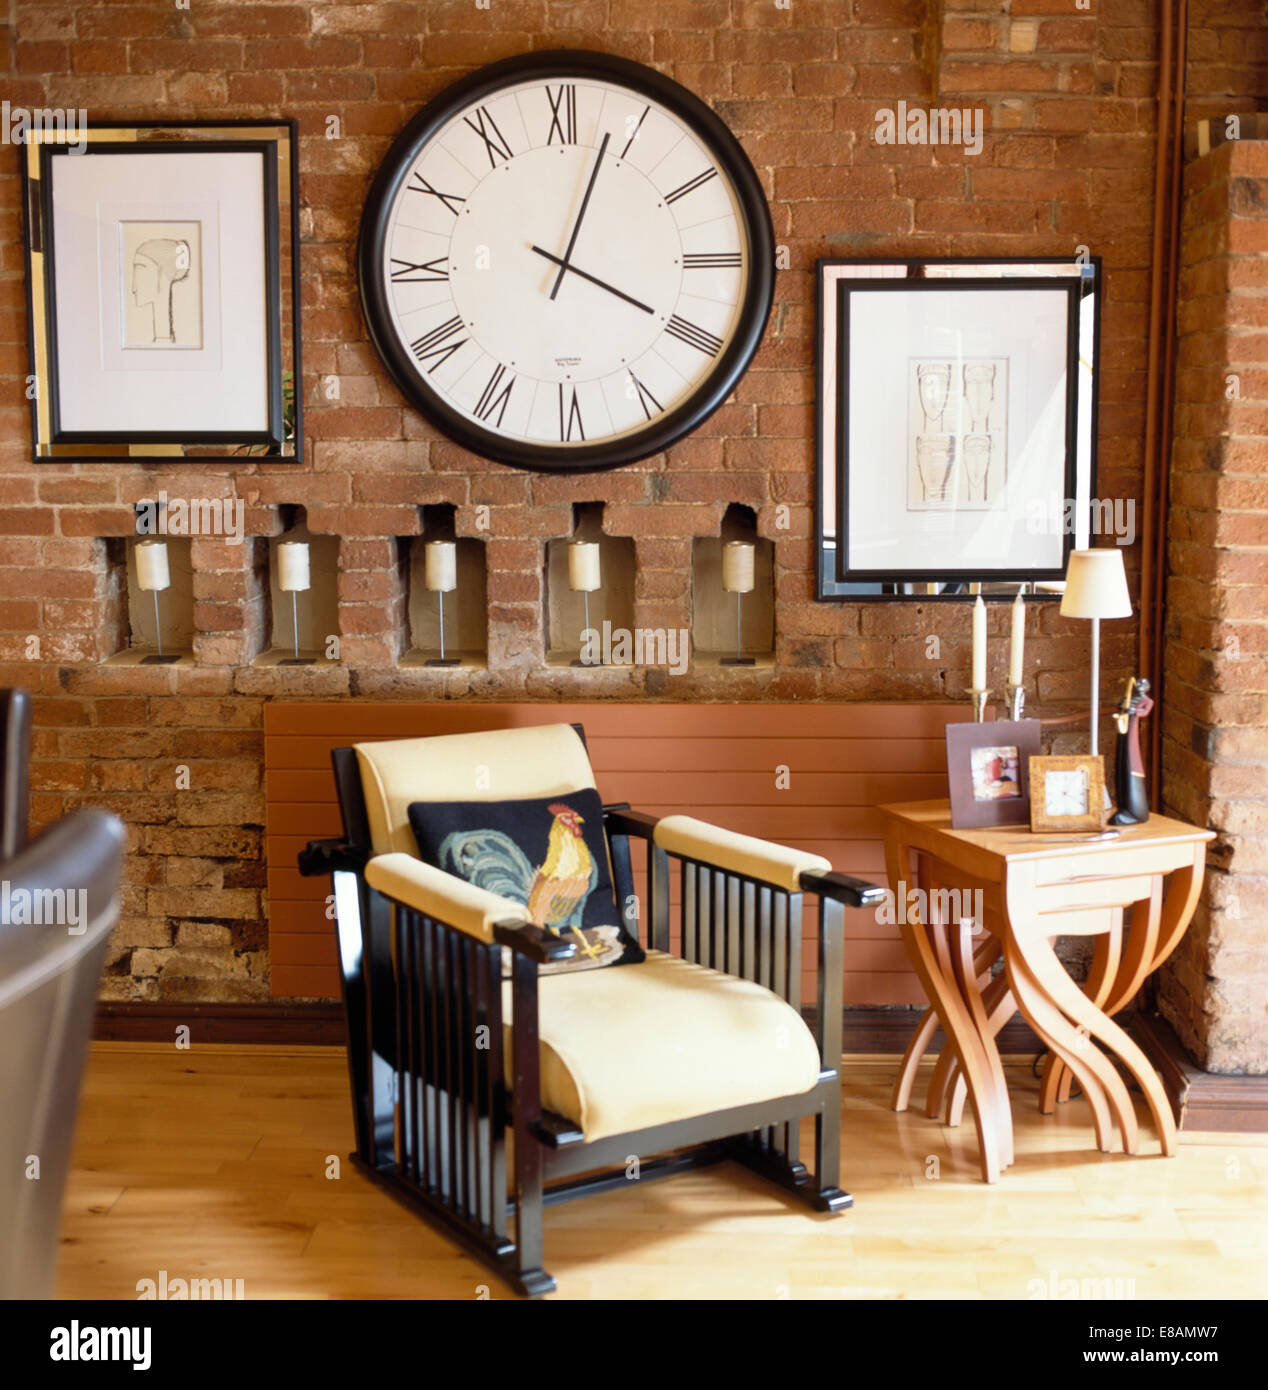 Edwardian Style Chair And Modern Nest Of Tables In Living Room With  Oversize Clock On Brick Wall With Small Alcoves